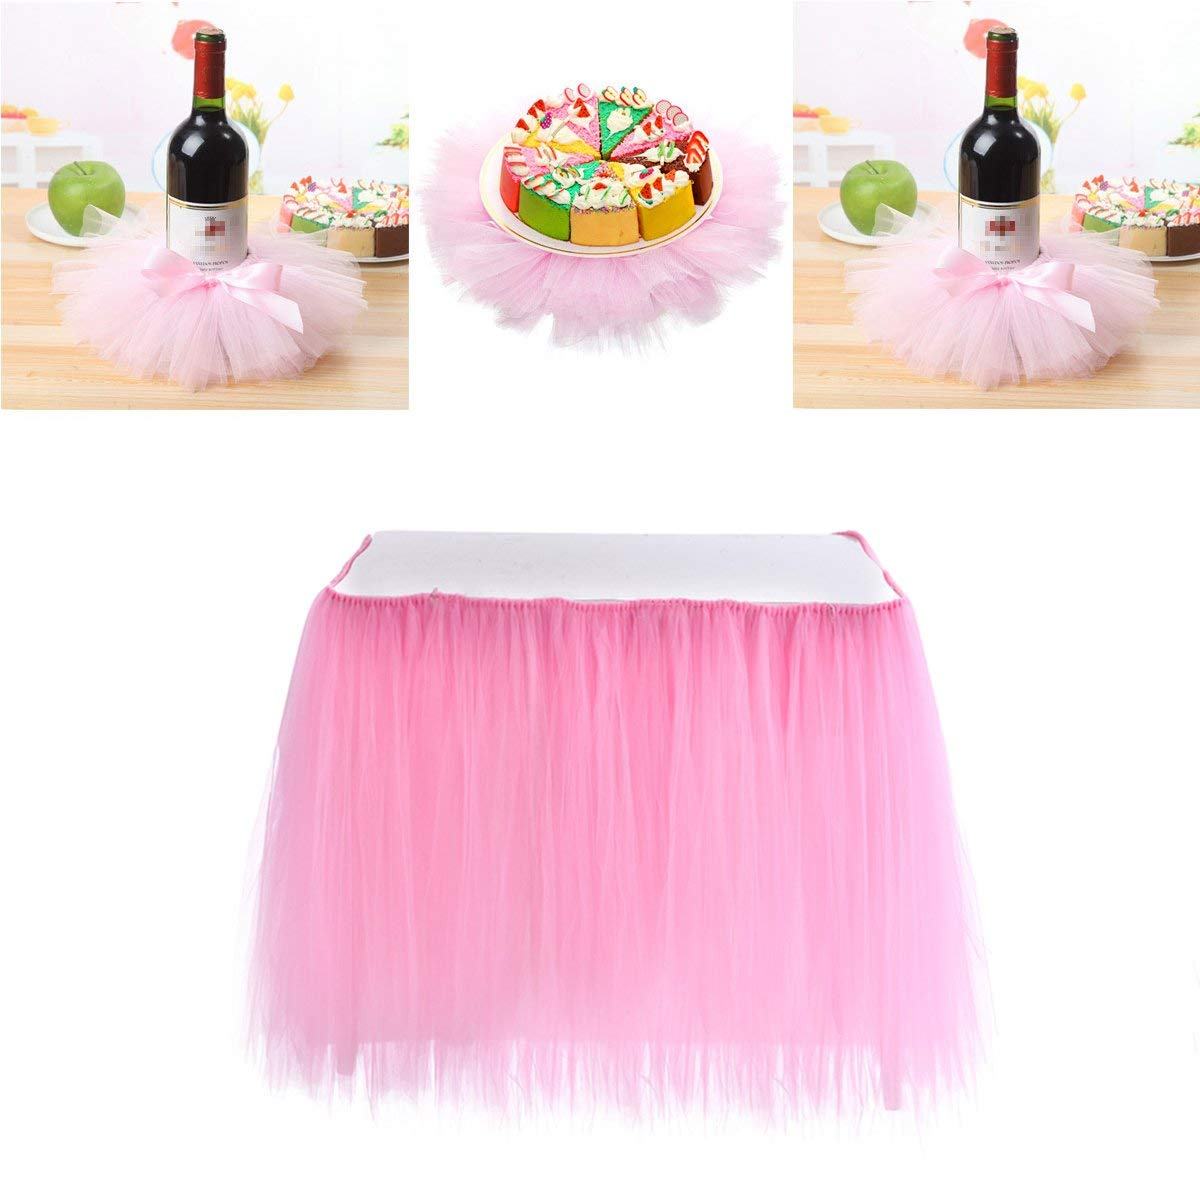 85880f05b9 Haperlare 31 x 36 inch Pink Tulle Table Skirt Tulle Pink Tablecloth and Red Wine  Bottle